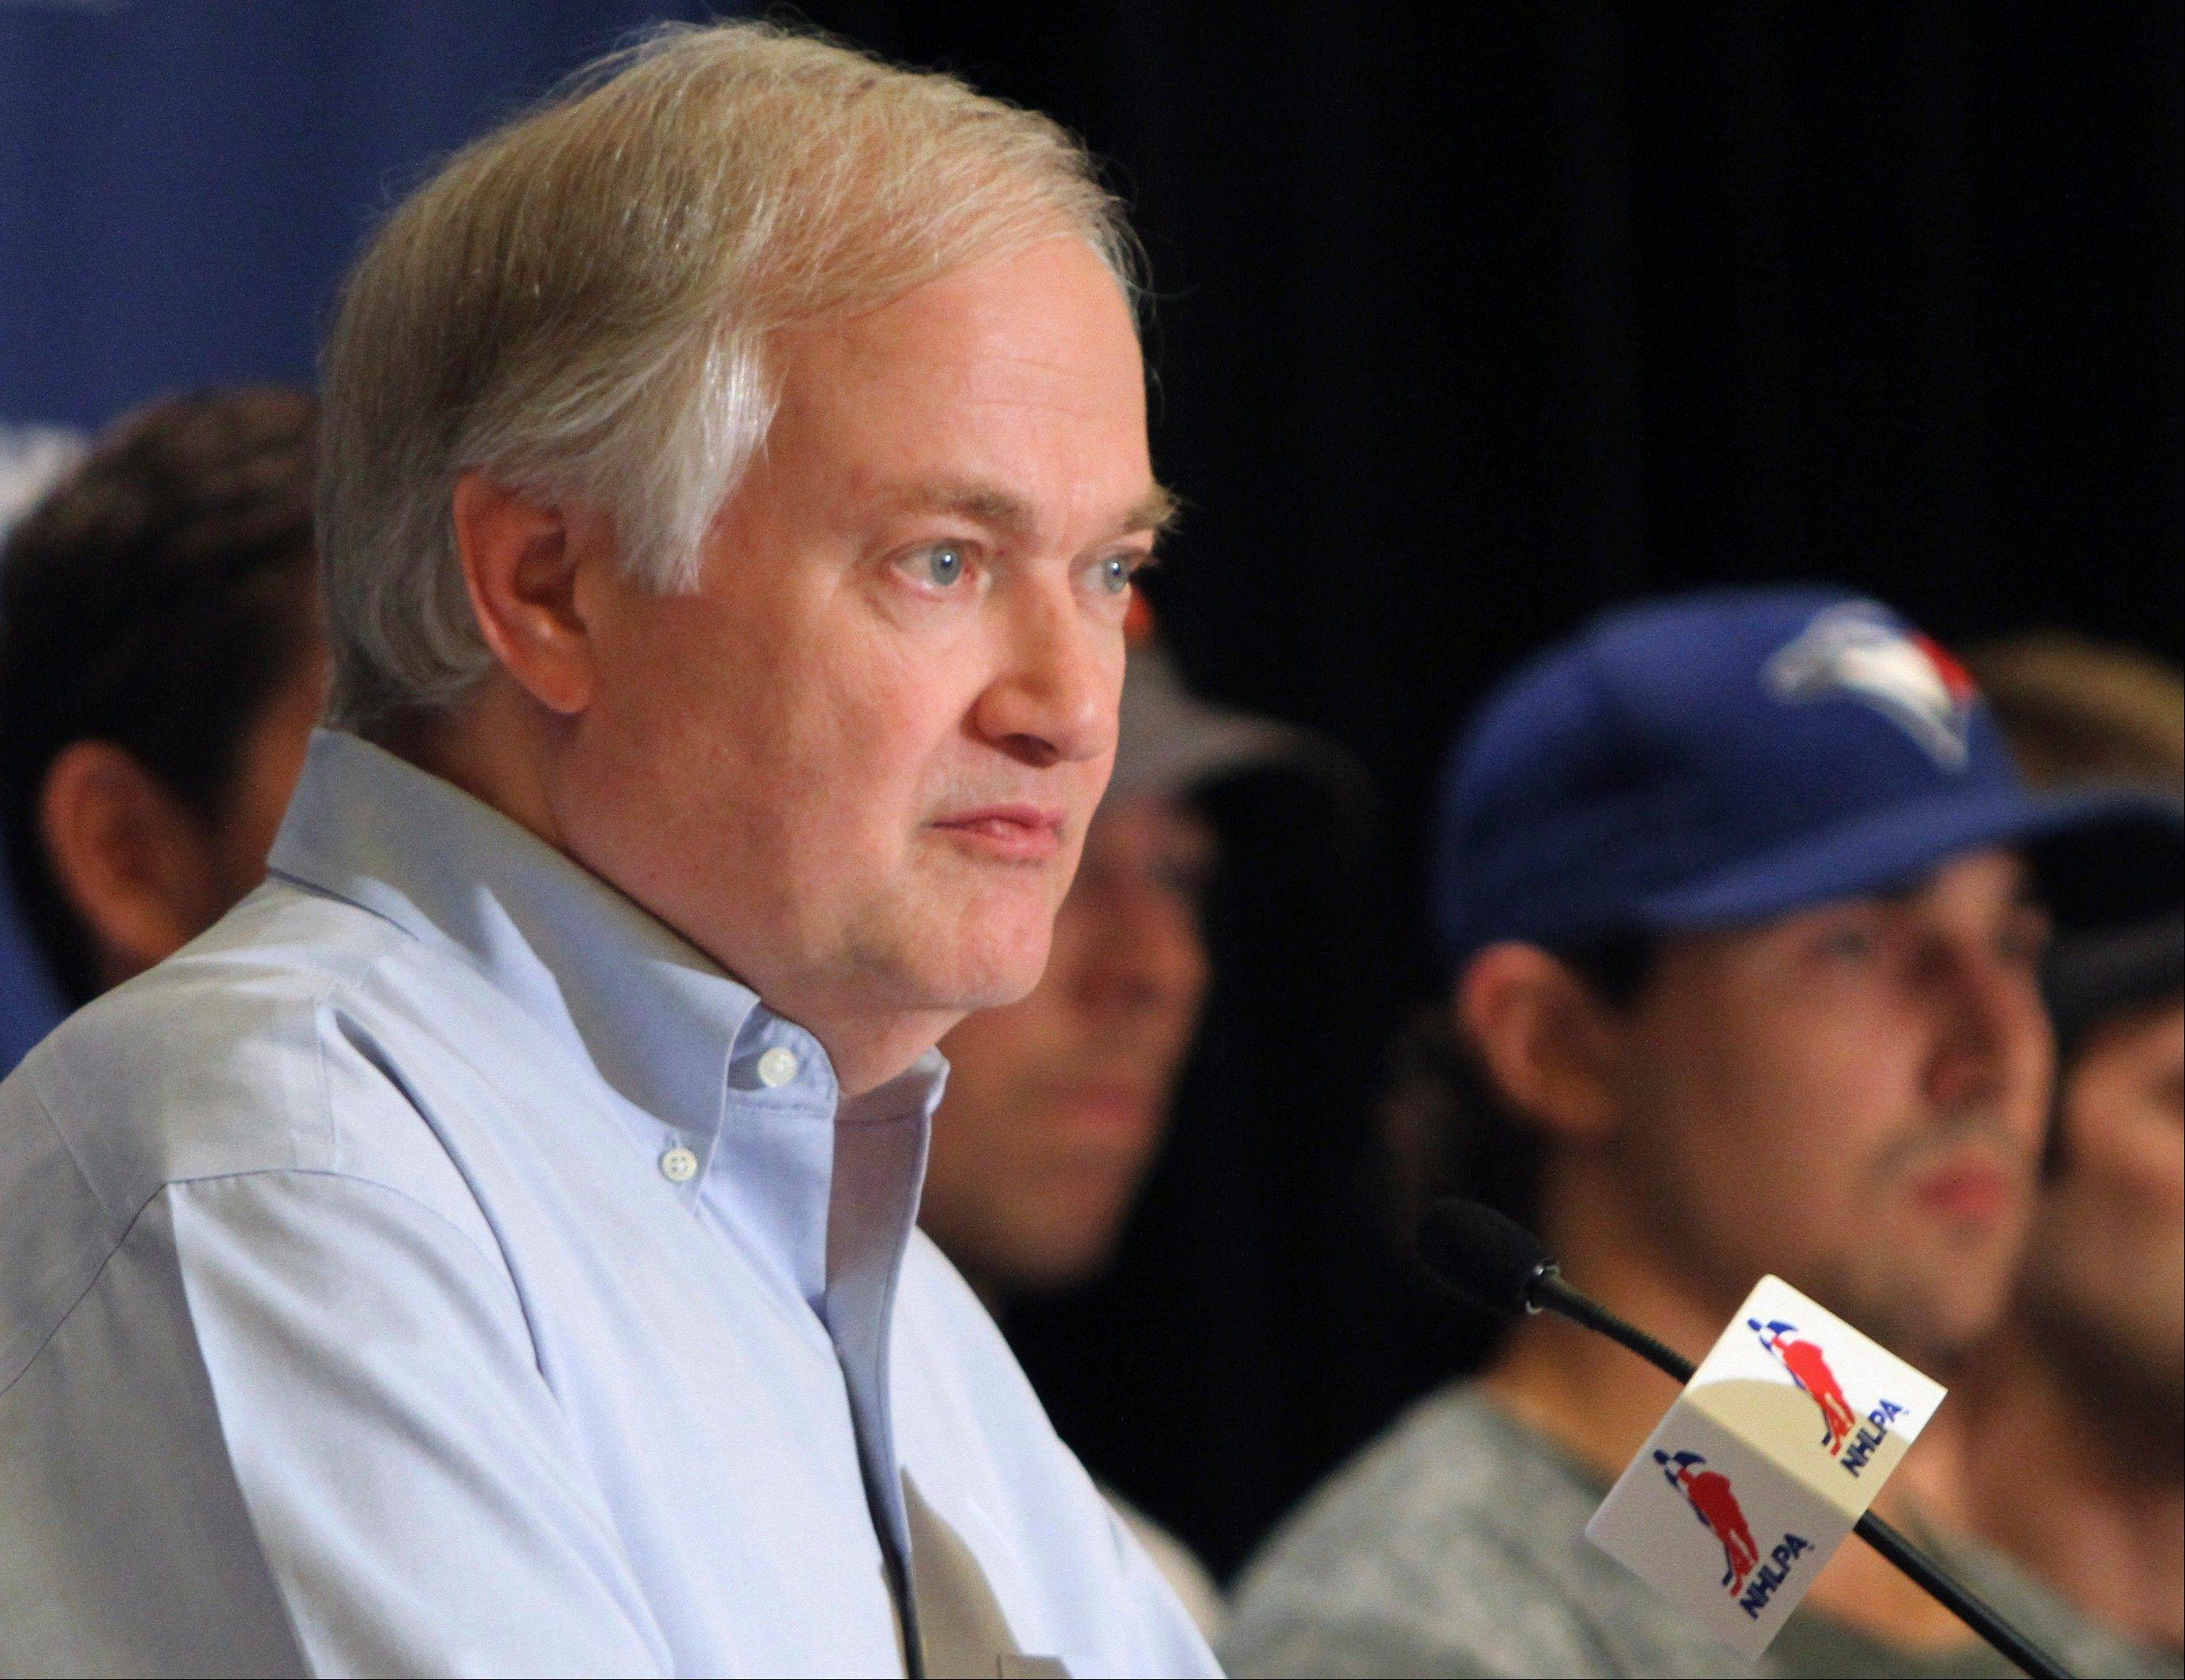 NHL Players Association executive director Donald Fehr and his negotiating team will resume talks Tuesday in Toronto with league officials. Little progress was reported from last week's meetings.